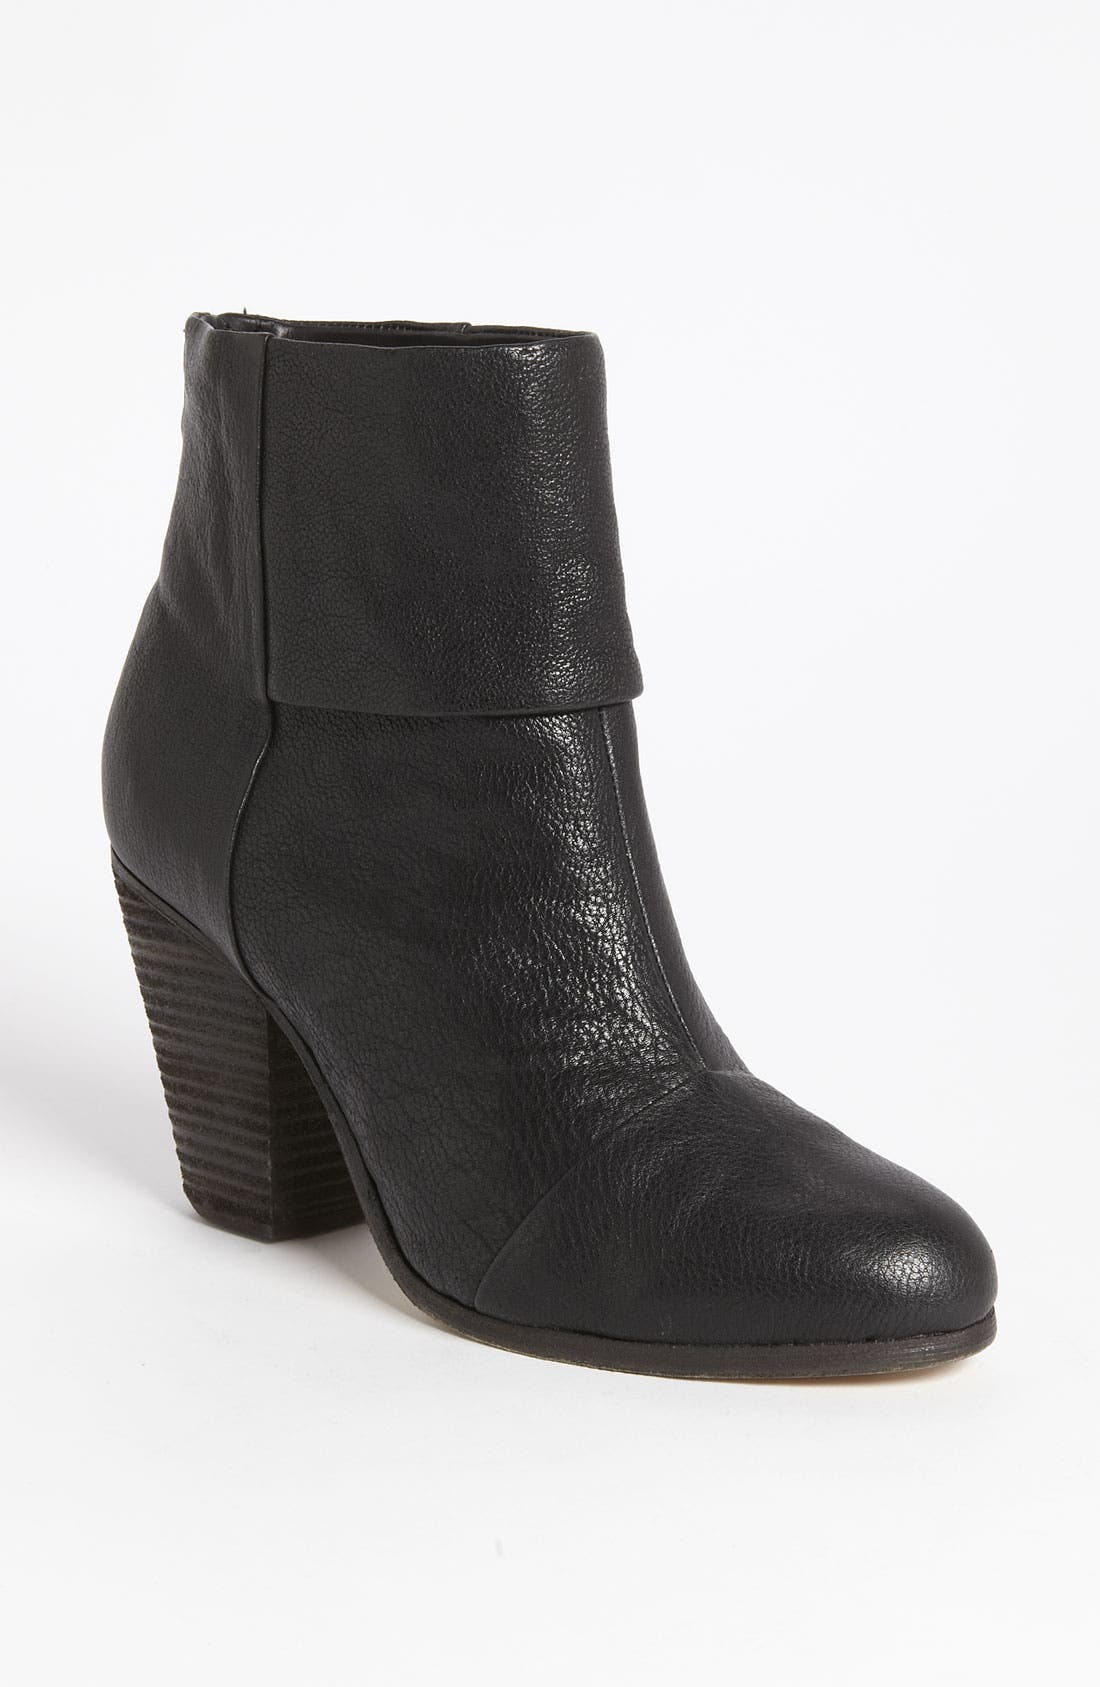 Alternate Image 1 Selected - rag & bone 'Newbury' Bootie (Women)